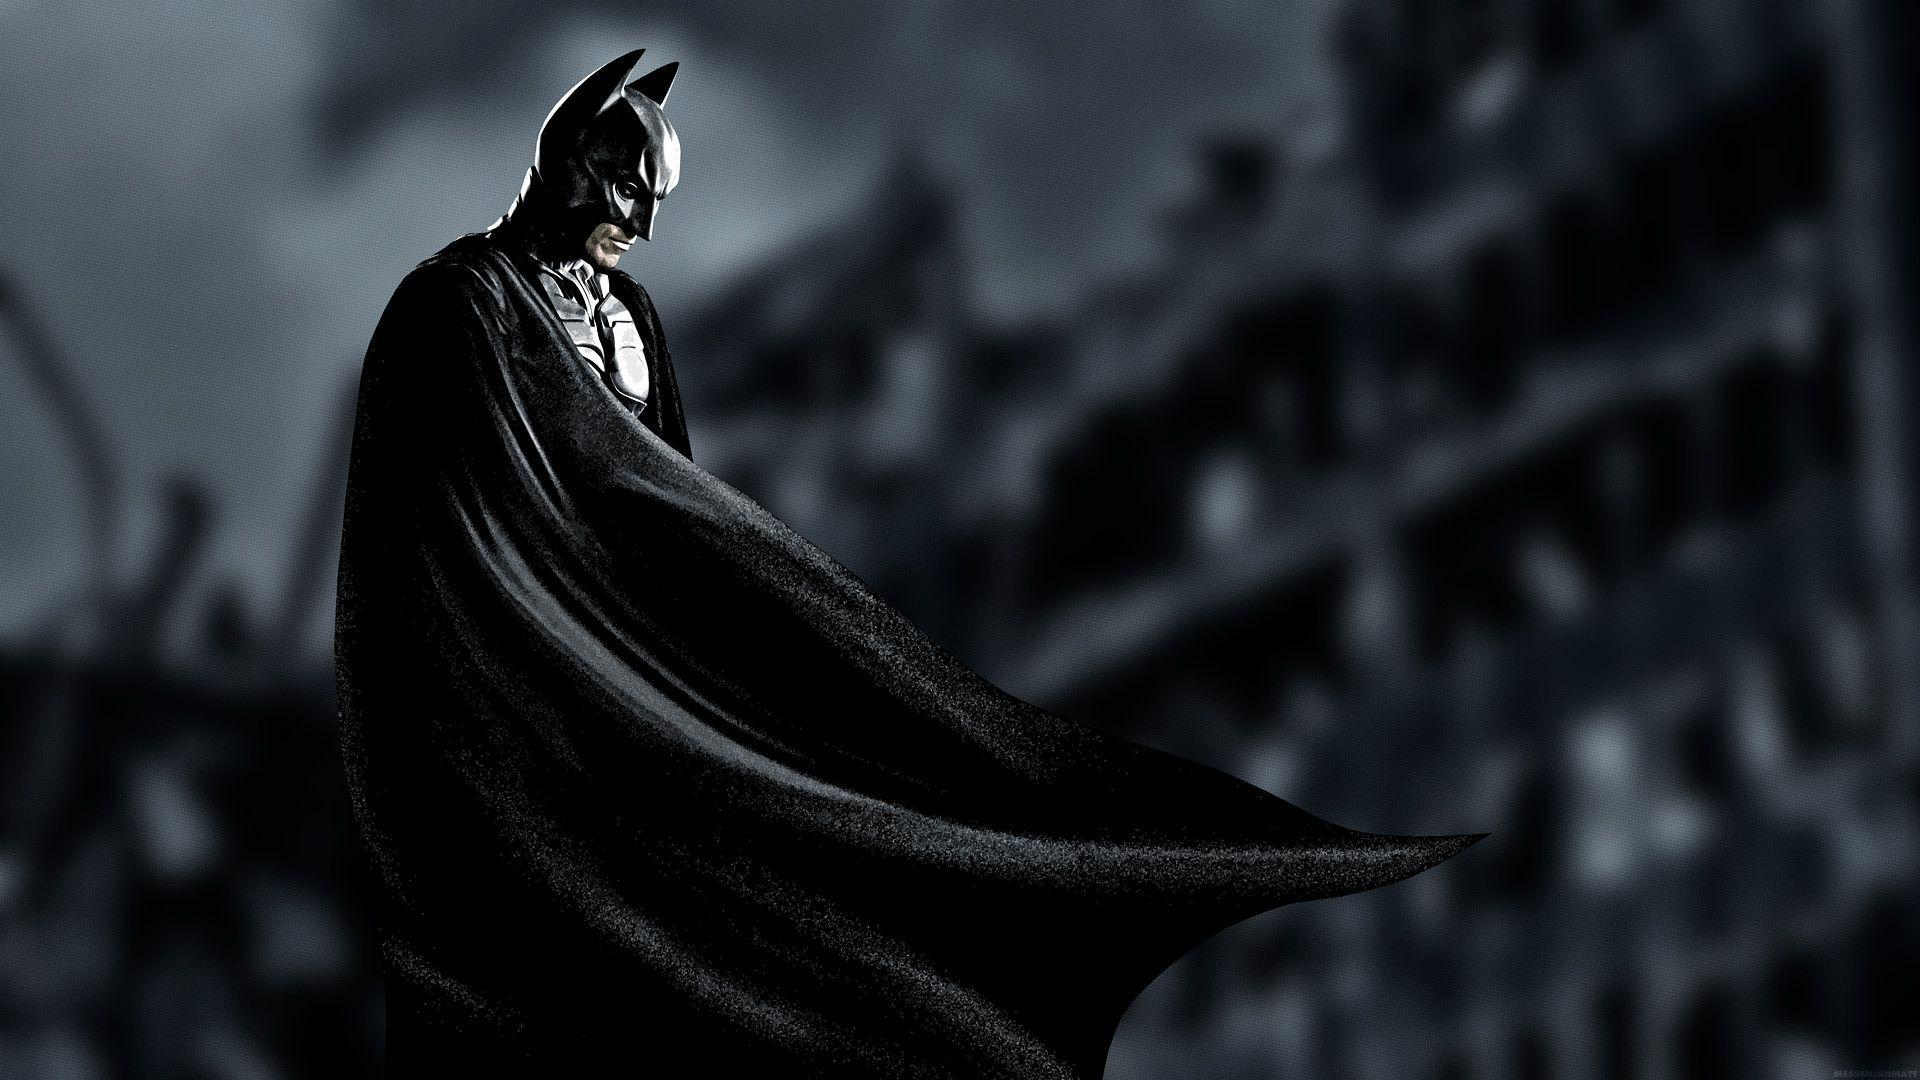 Dark Knight Rises Wallpapers Hd 1920X1080 wallpapers